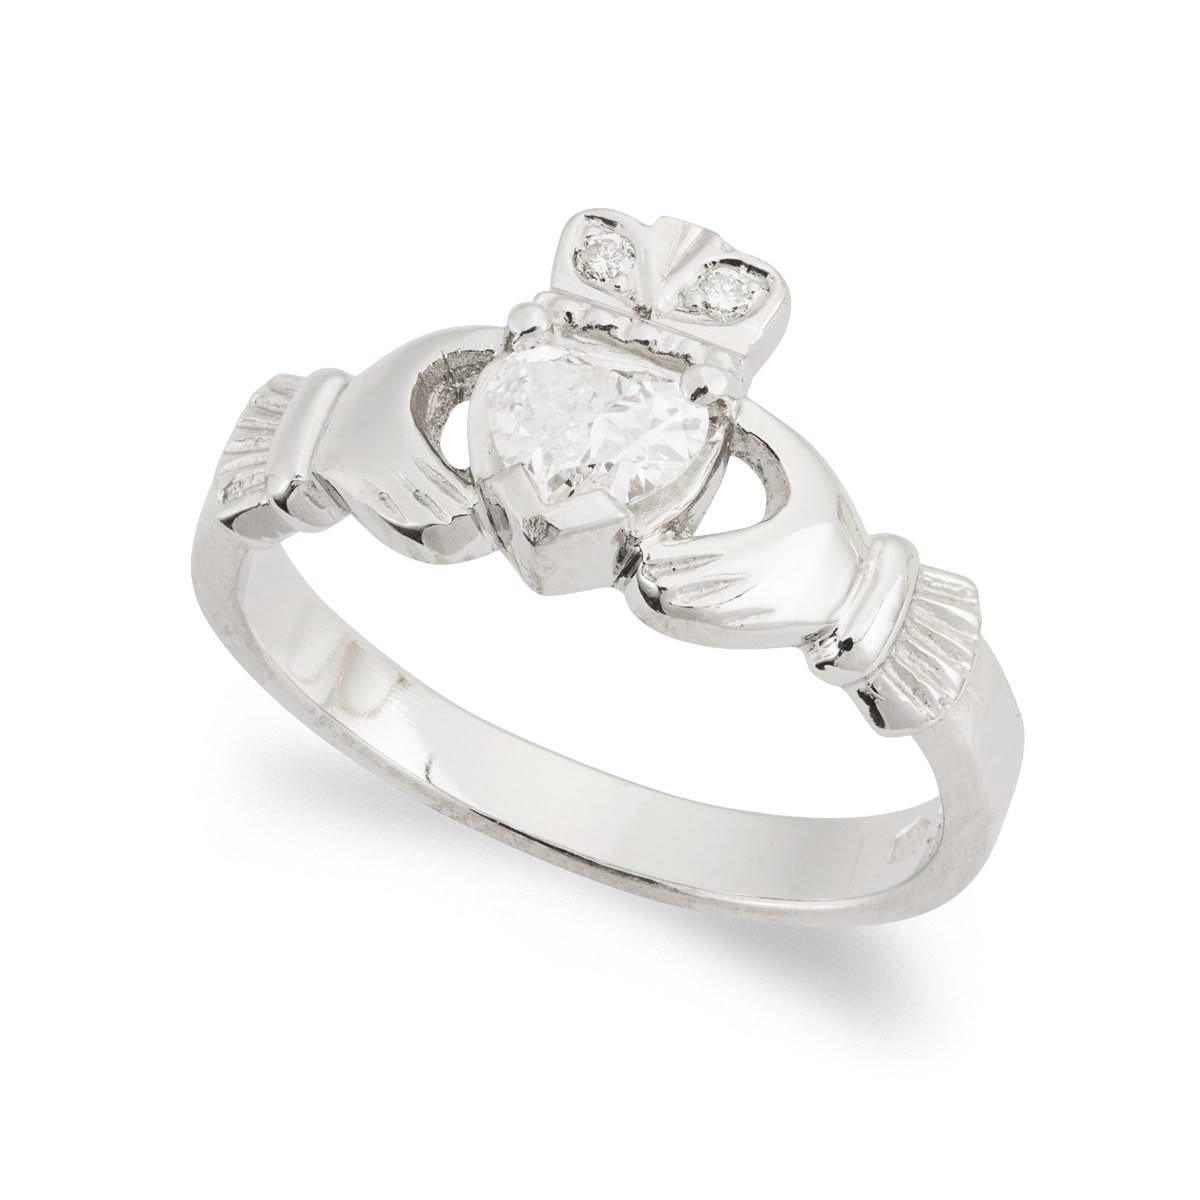 The Ashford Diamond Claddagh Ring In Platinum | Claddagh Jewellers With Claddagh Engagement Rings (Gallery 15 of 15)